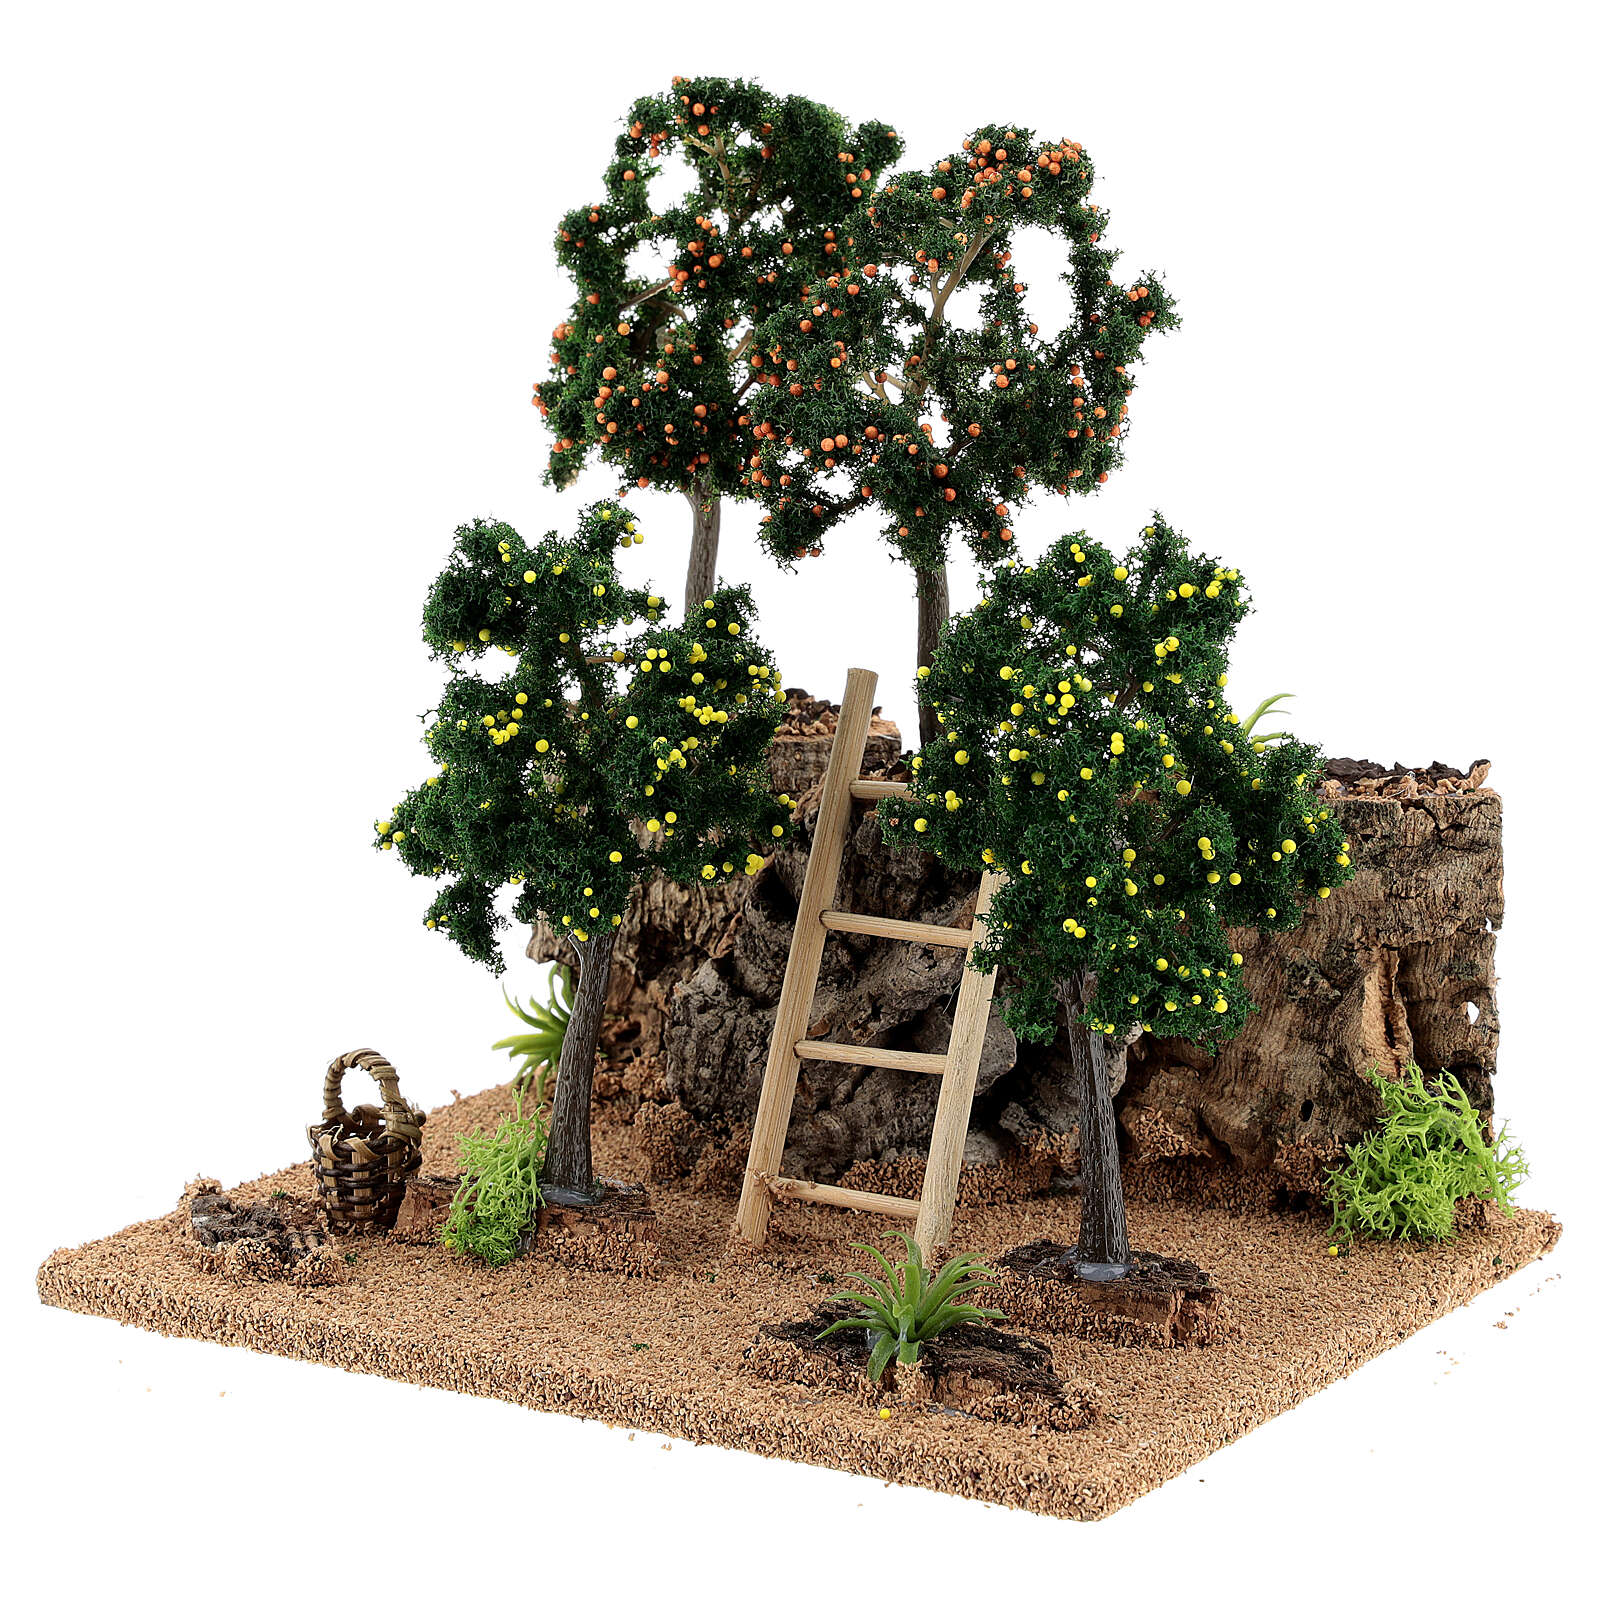 Citrus grove for Nativity scene 19x15x19 cm: setting with fruit trees 4